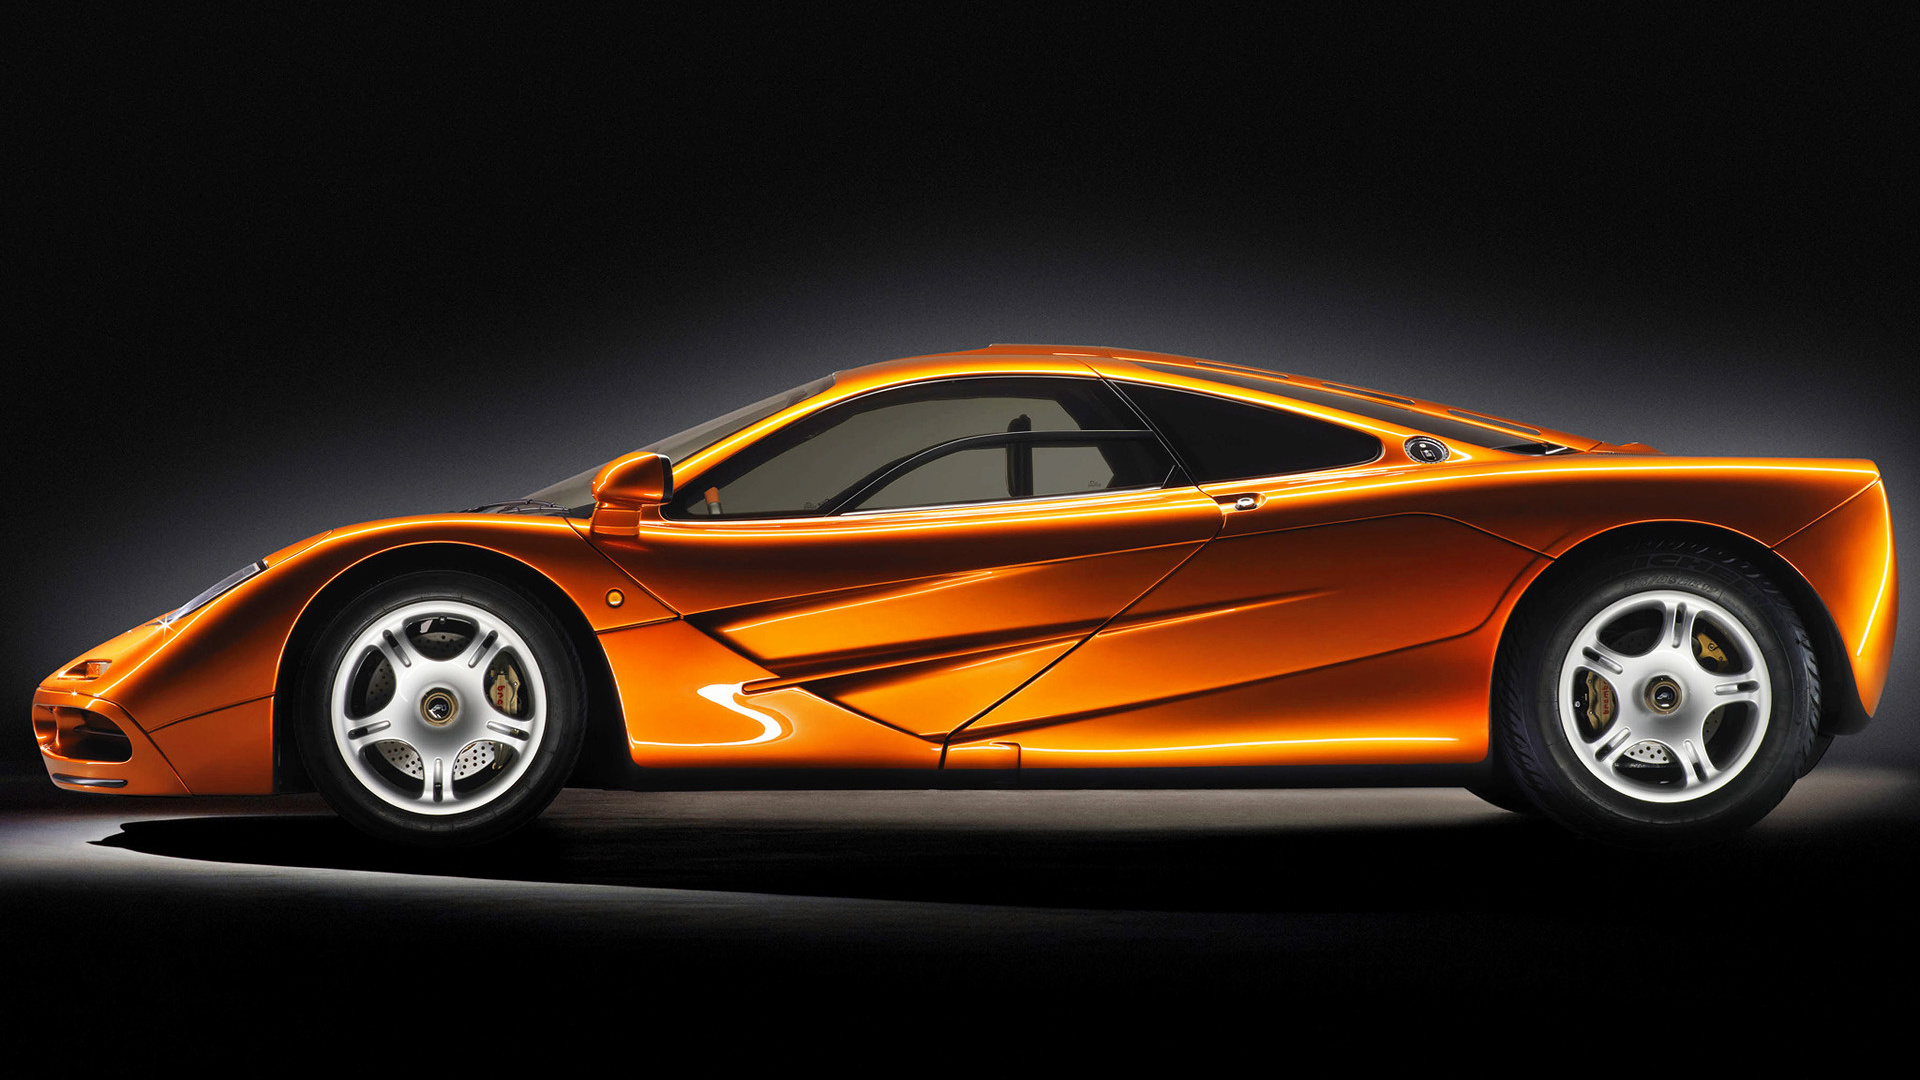 Mclaren F Wallpaper Hd on Pictures Of 1994 Mitsubishi Autos